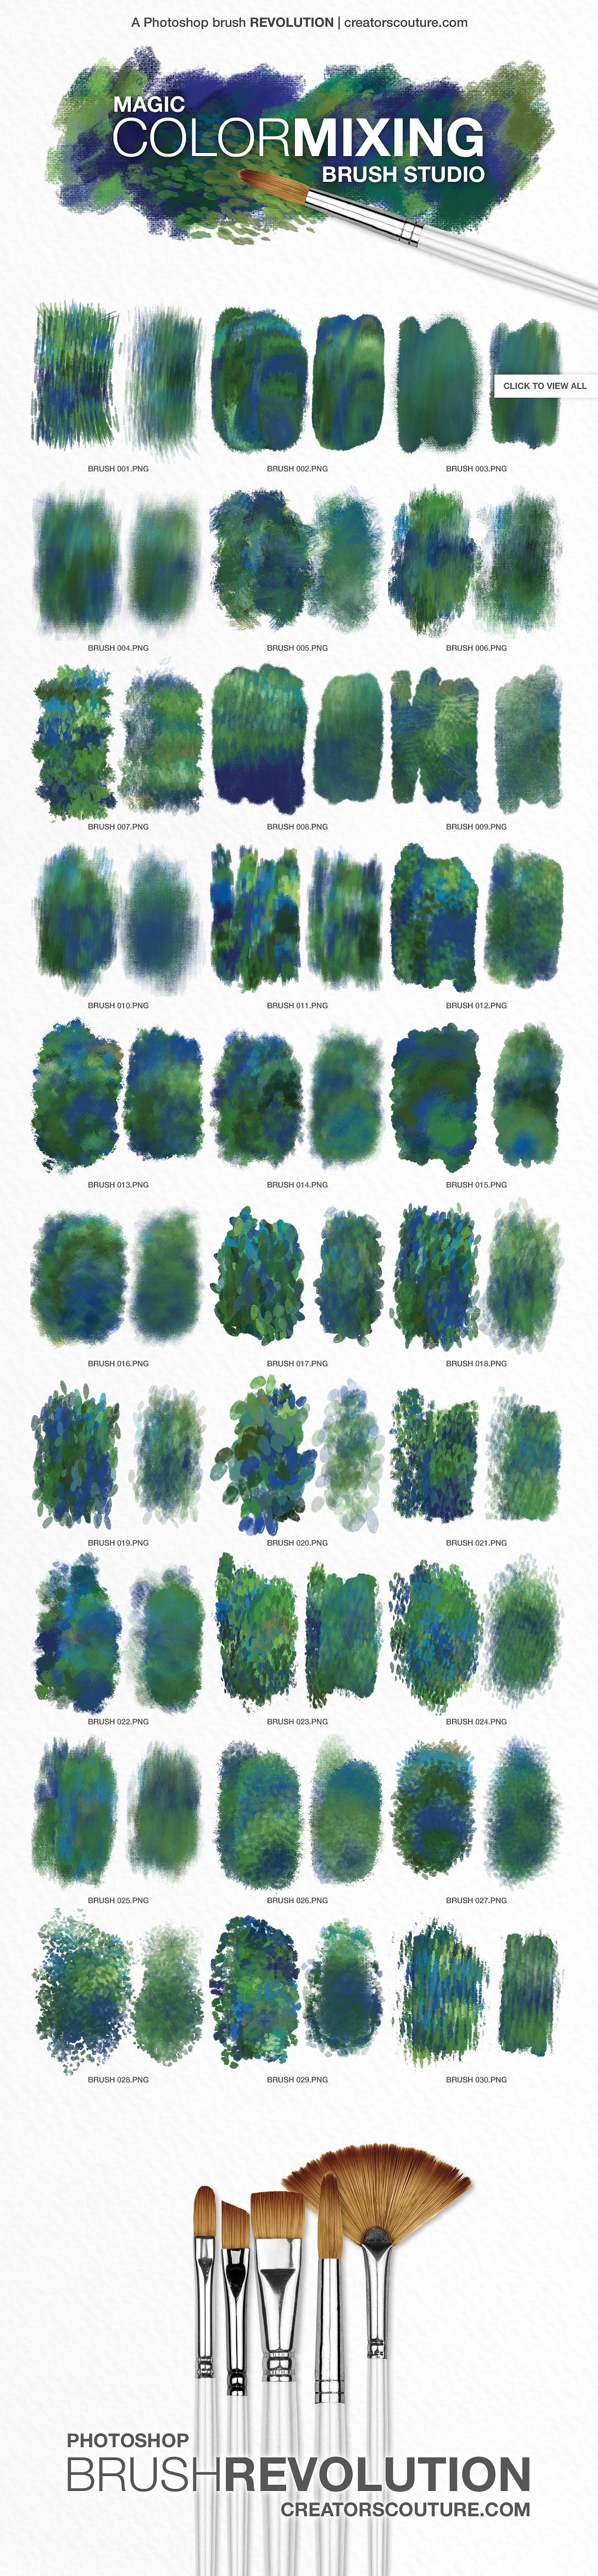 impressionist photoshop brushes. magic color-mixing photoshop brushes, perfect for graphic design, illustration, and designing printables!